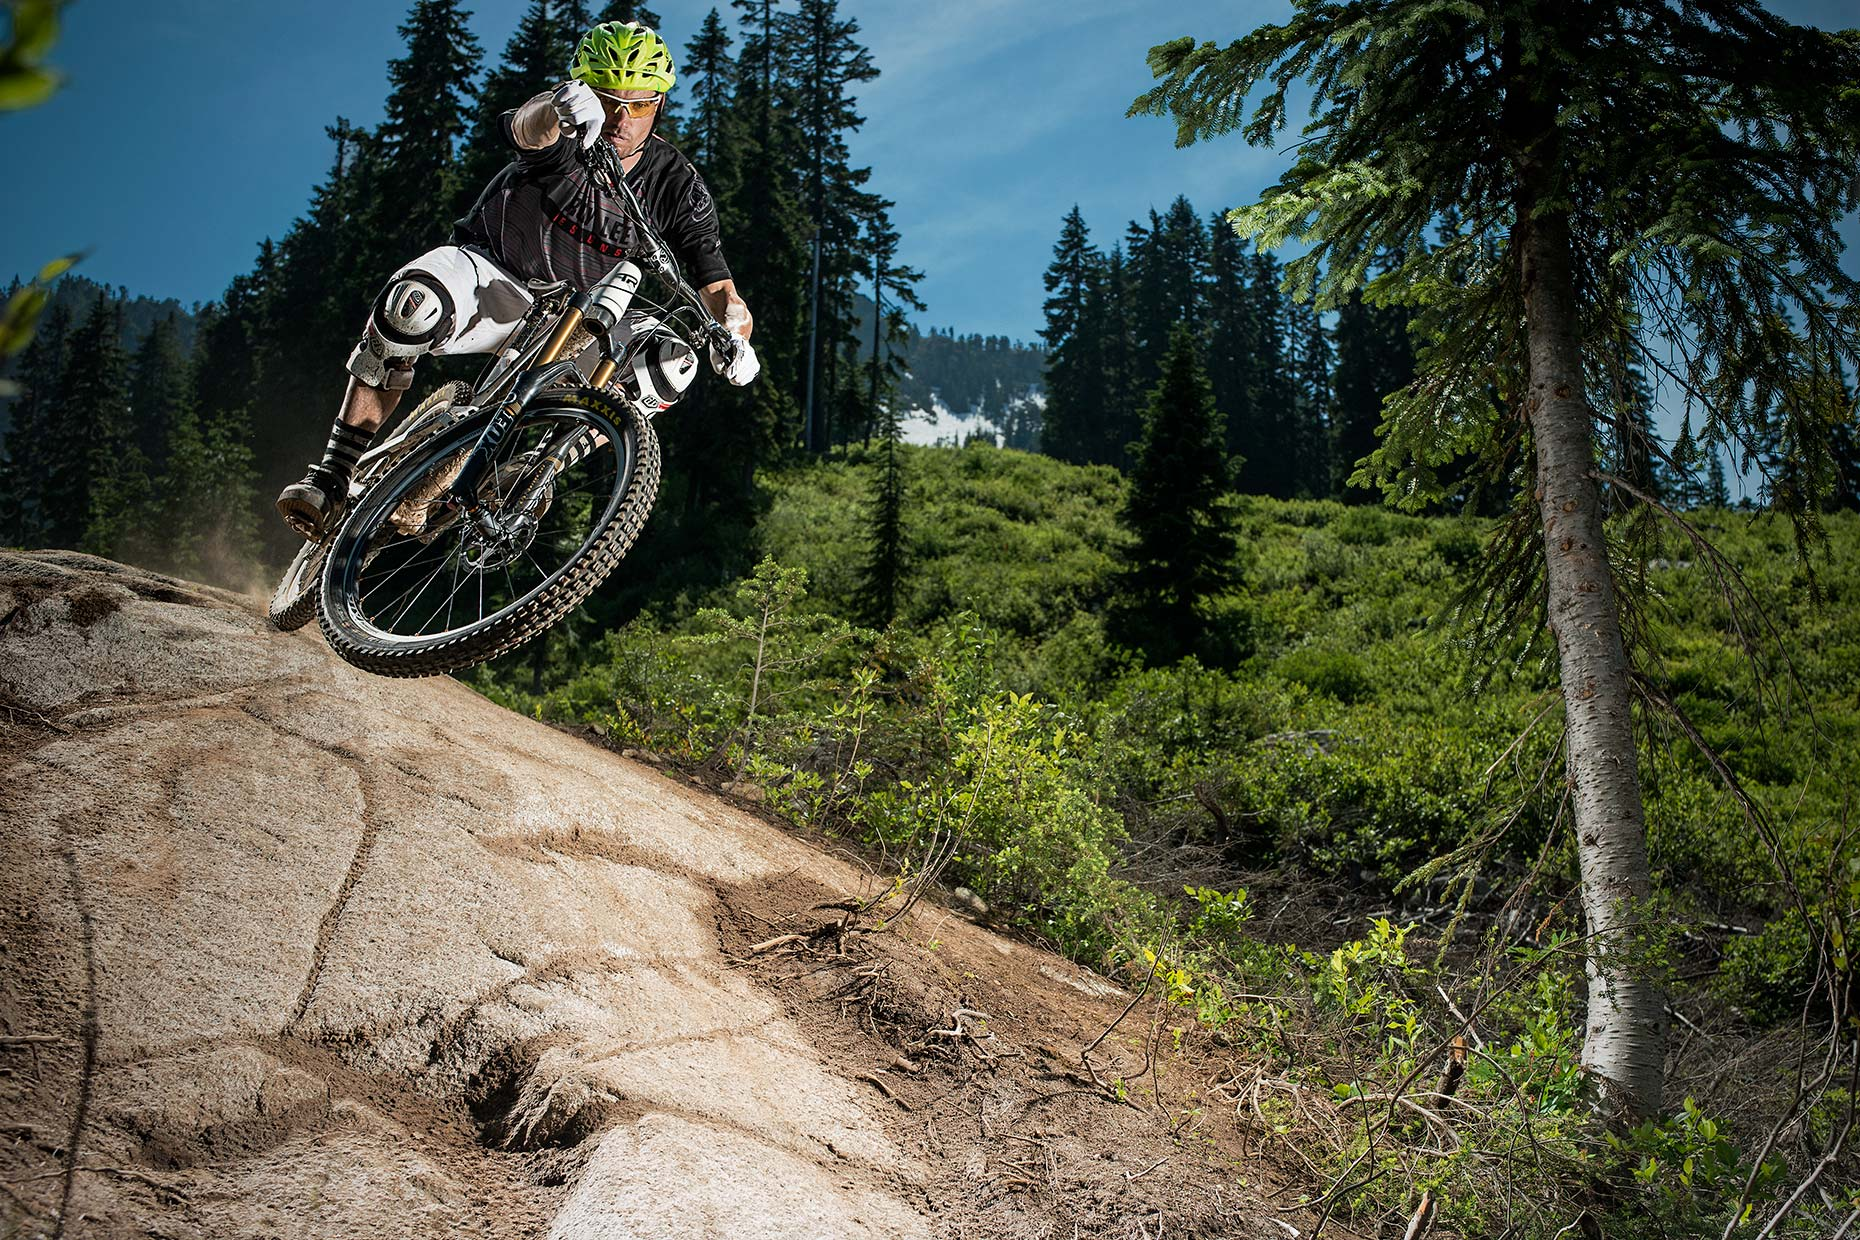 Ian-Coble-Mountain-Bike-Stevens-Pass-Strobe